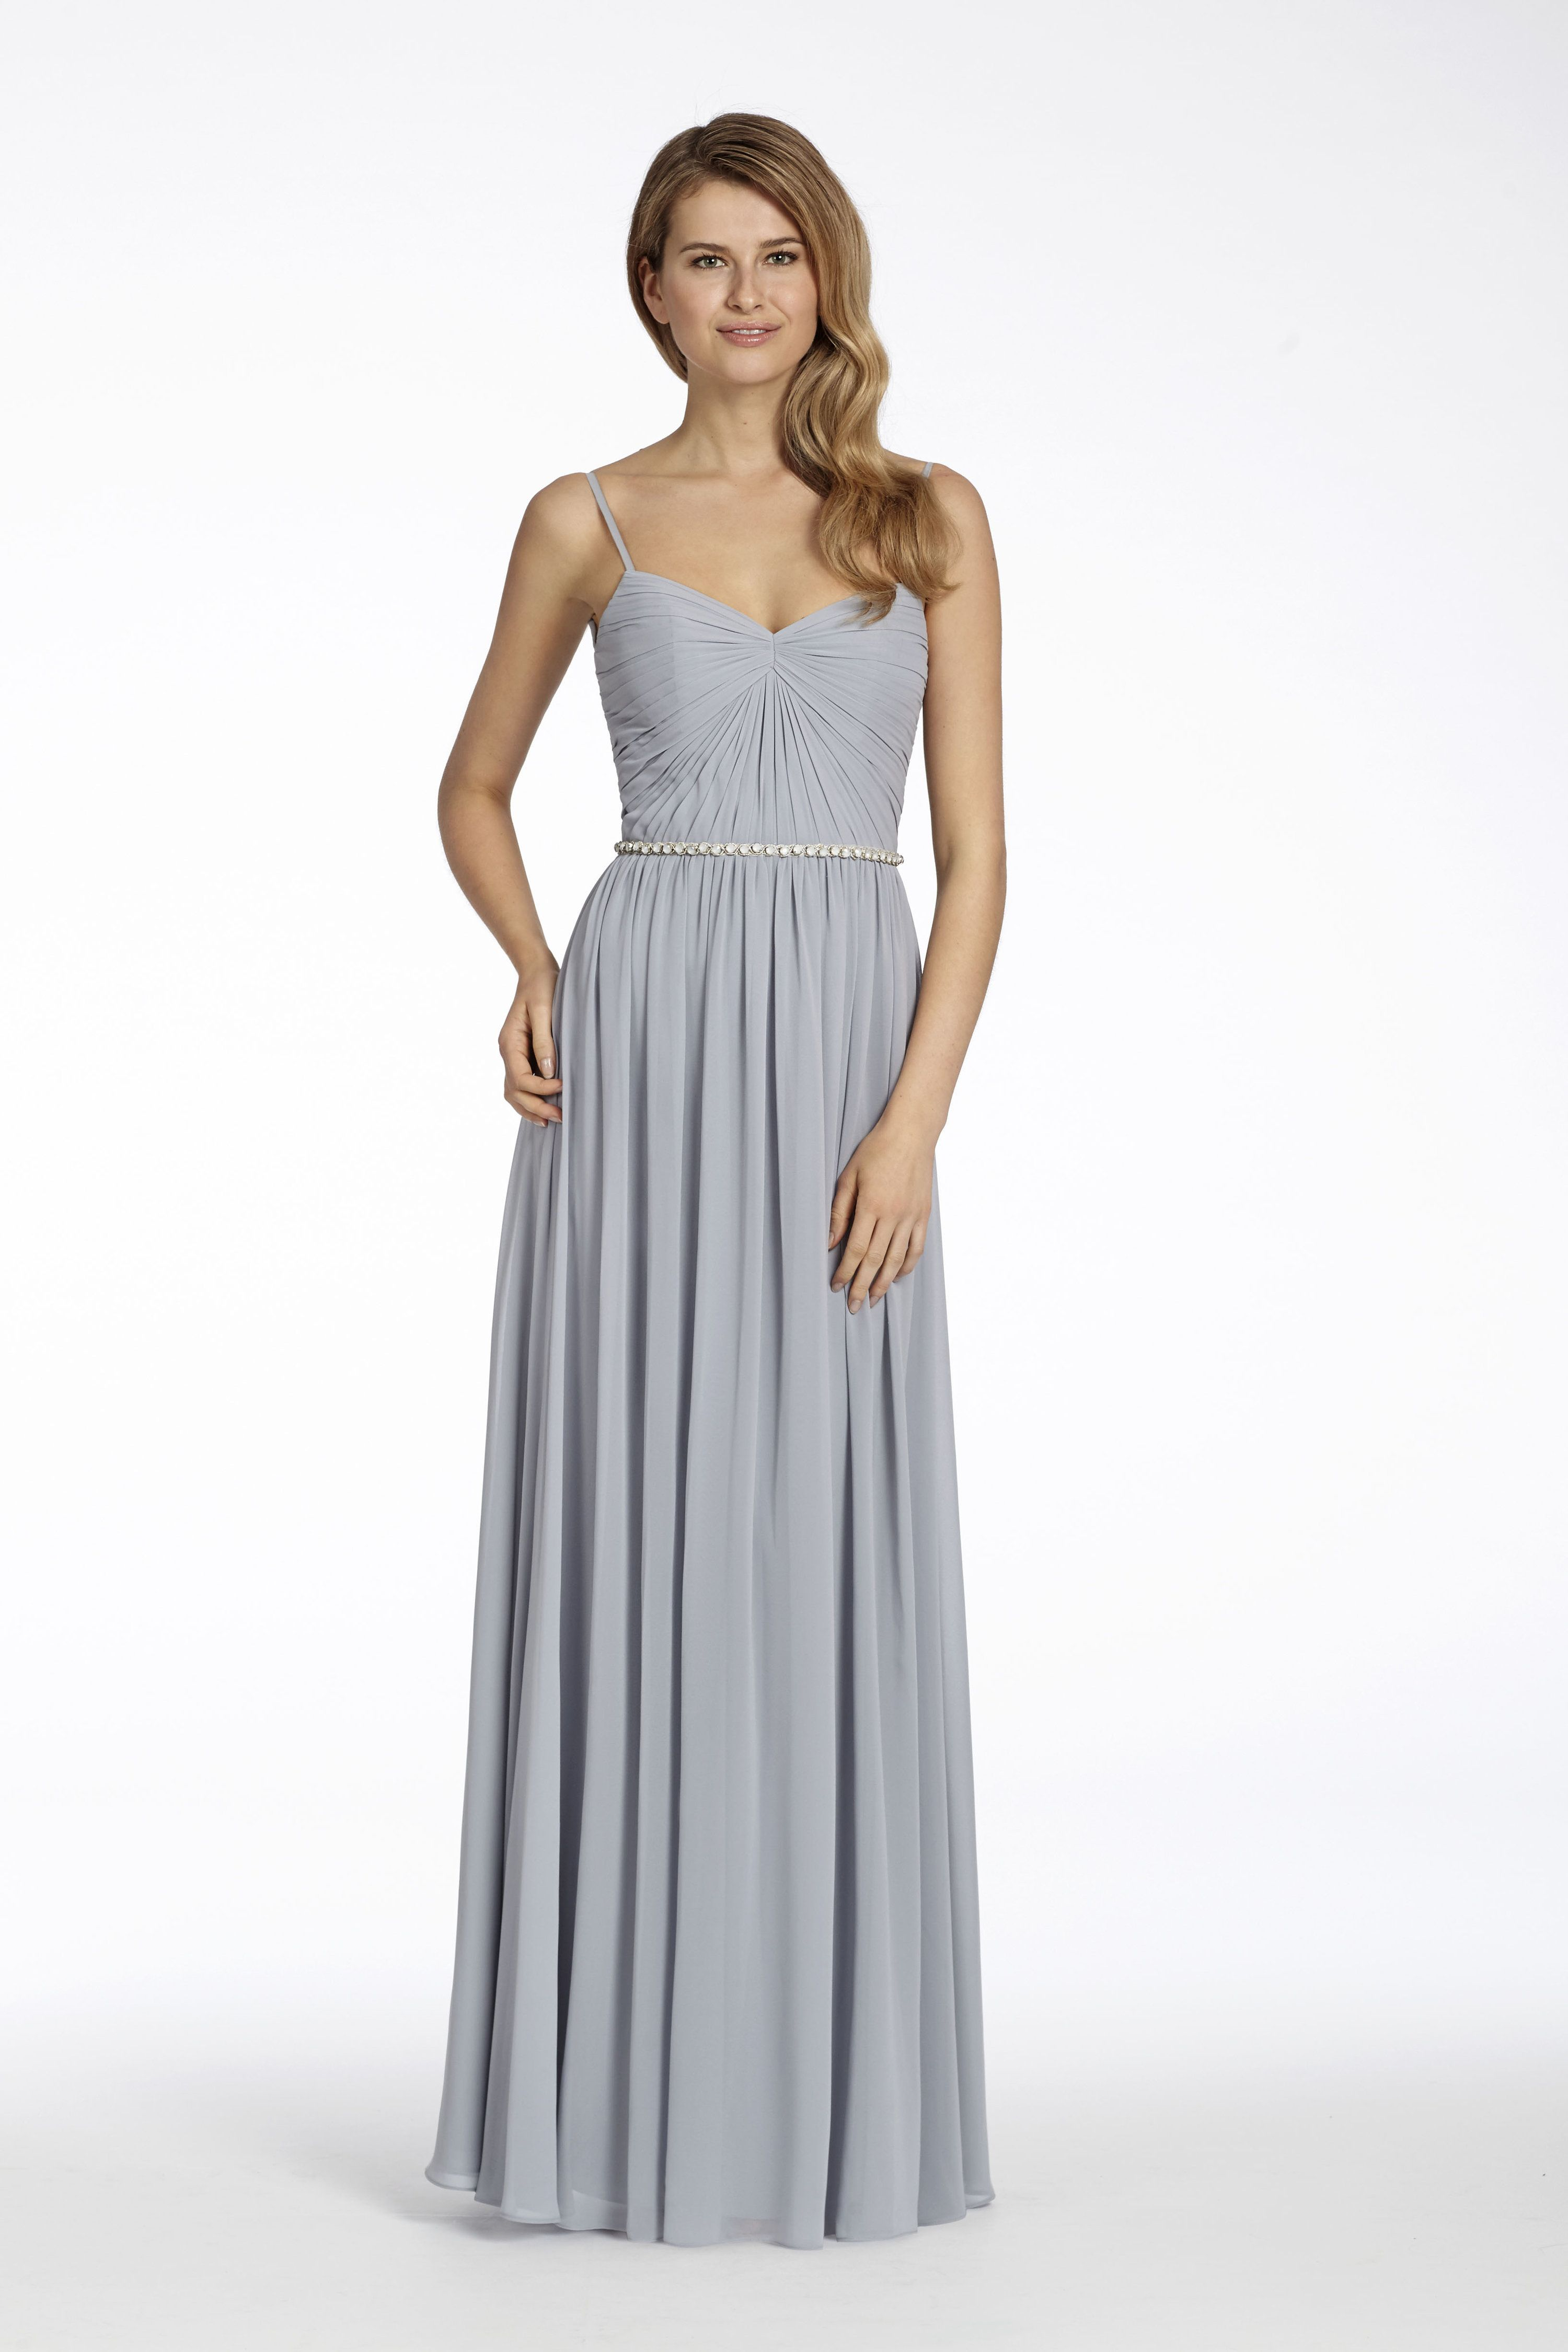 1b23c20fa54 Hayley Paige Occasions Style 5701